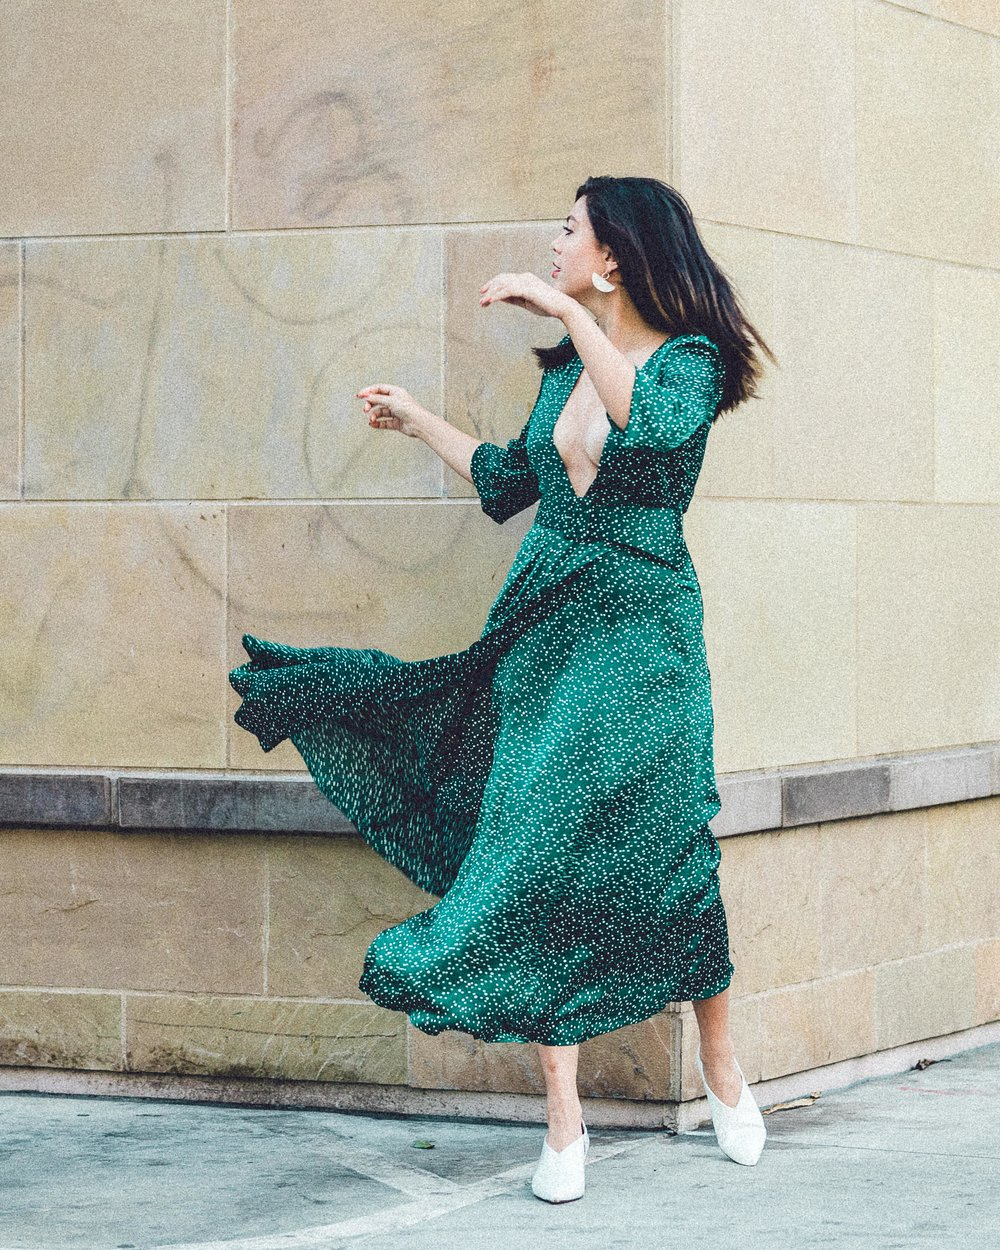 Rachel Off Duty: Holiday Party Inspo - Wear Emerald - Emerald Dress